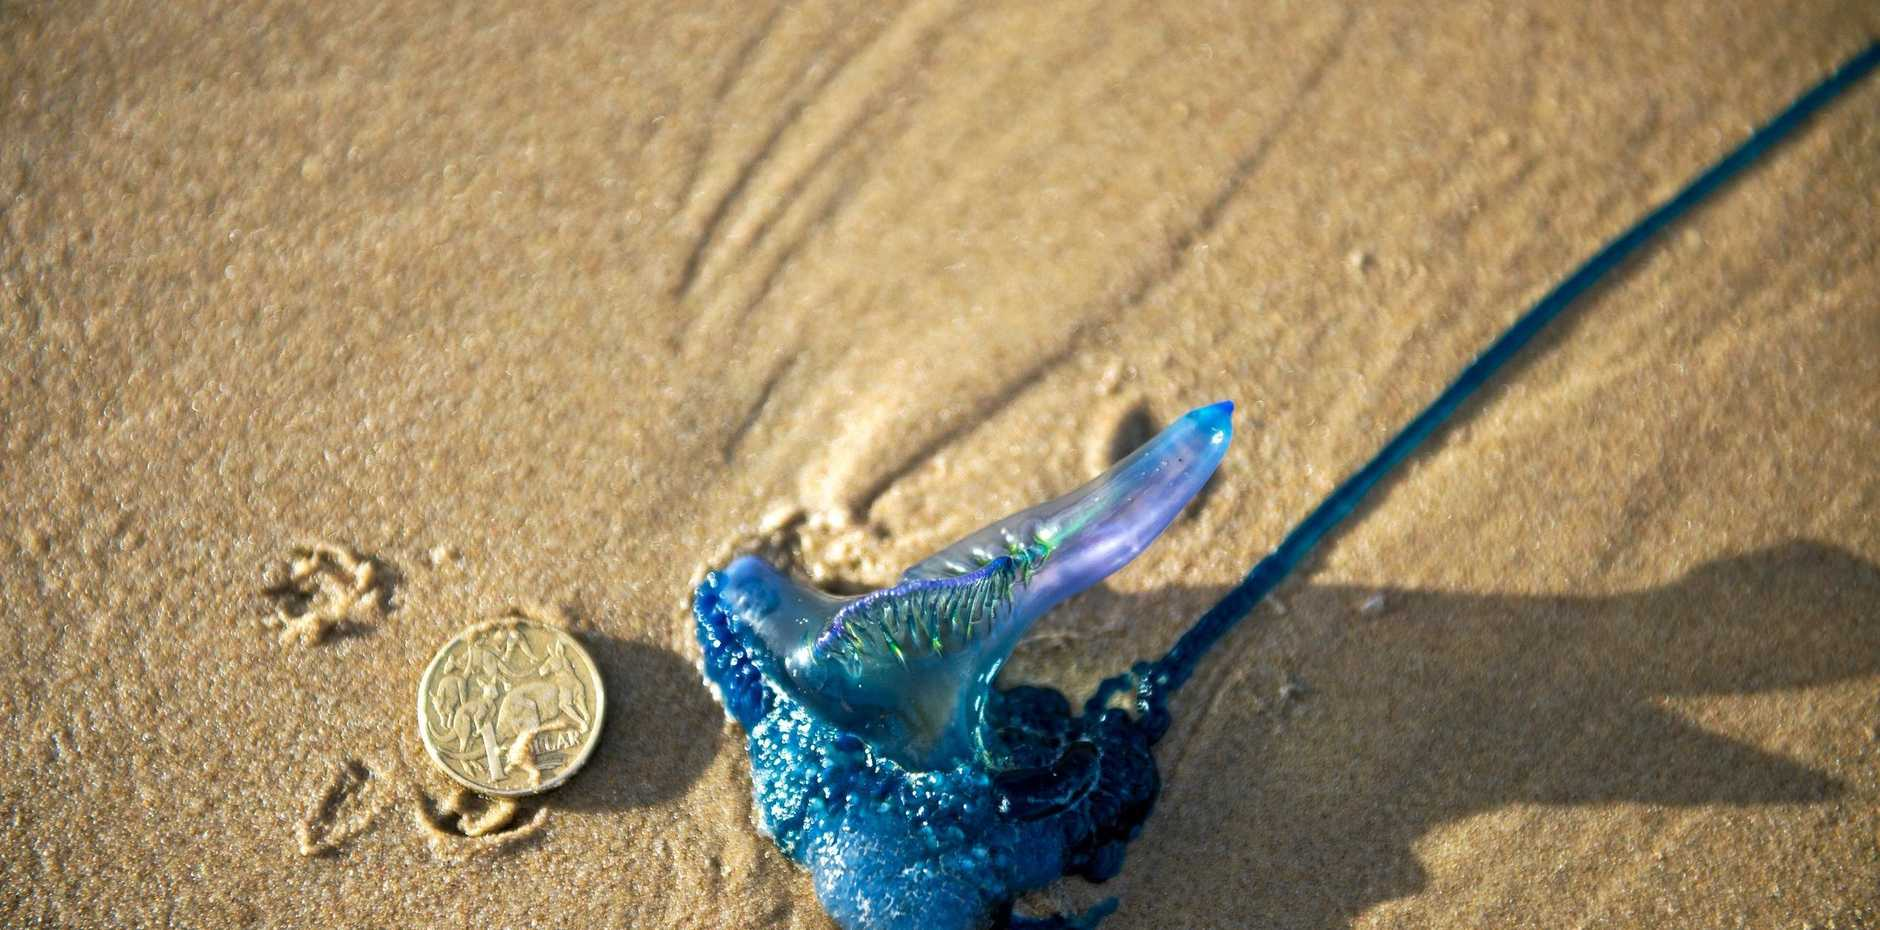 Marine bluebottle washed up on the beach.